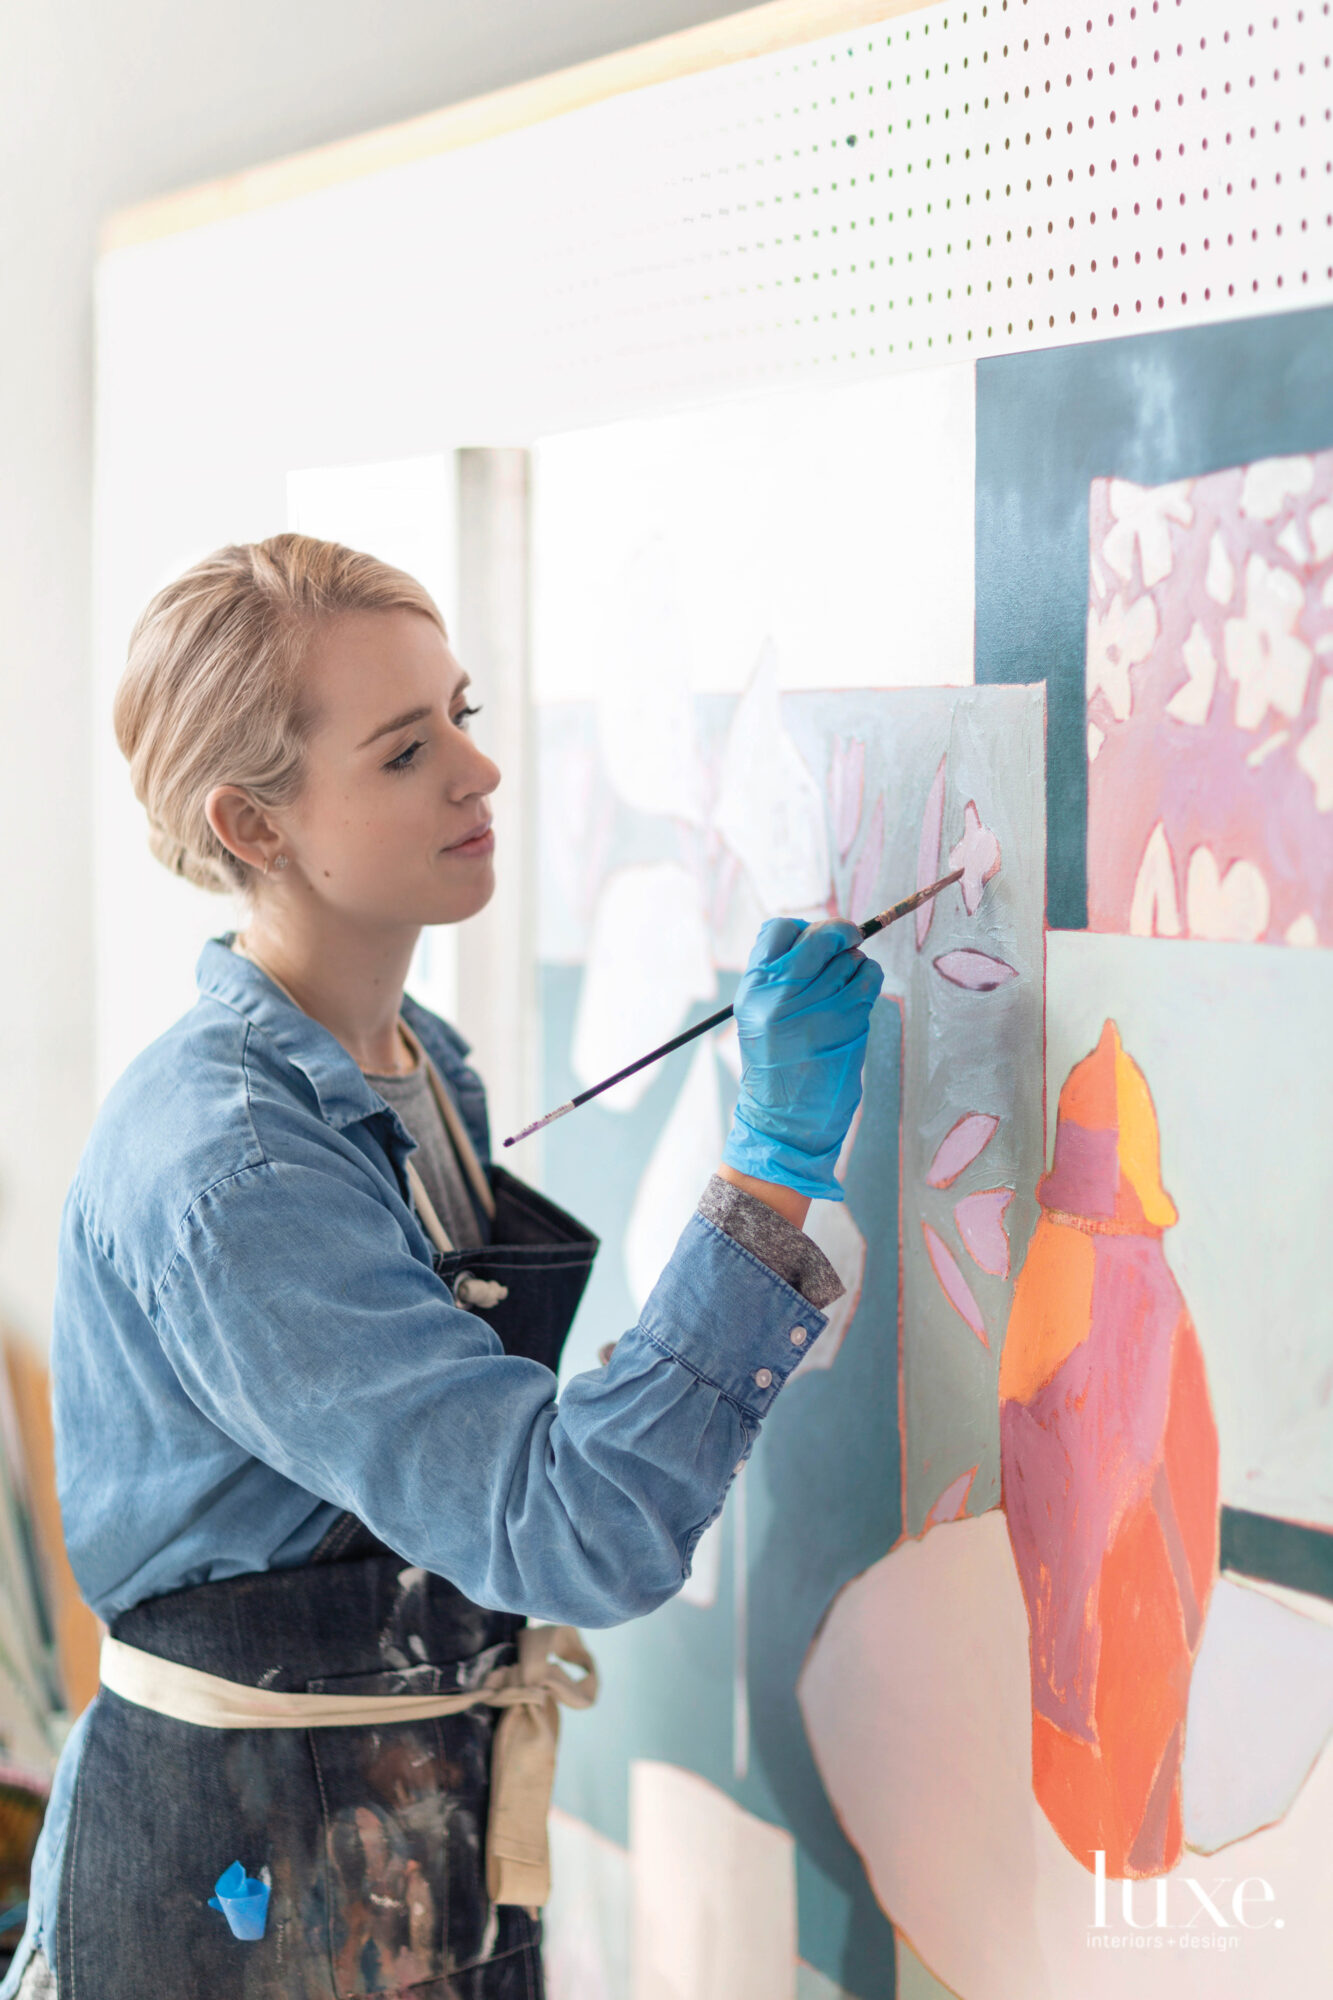 With A Studio Full Of Sprigs And Petals, Painting Florals Is Second Nature For This Dallas Artist